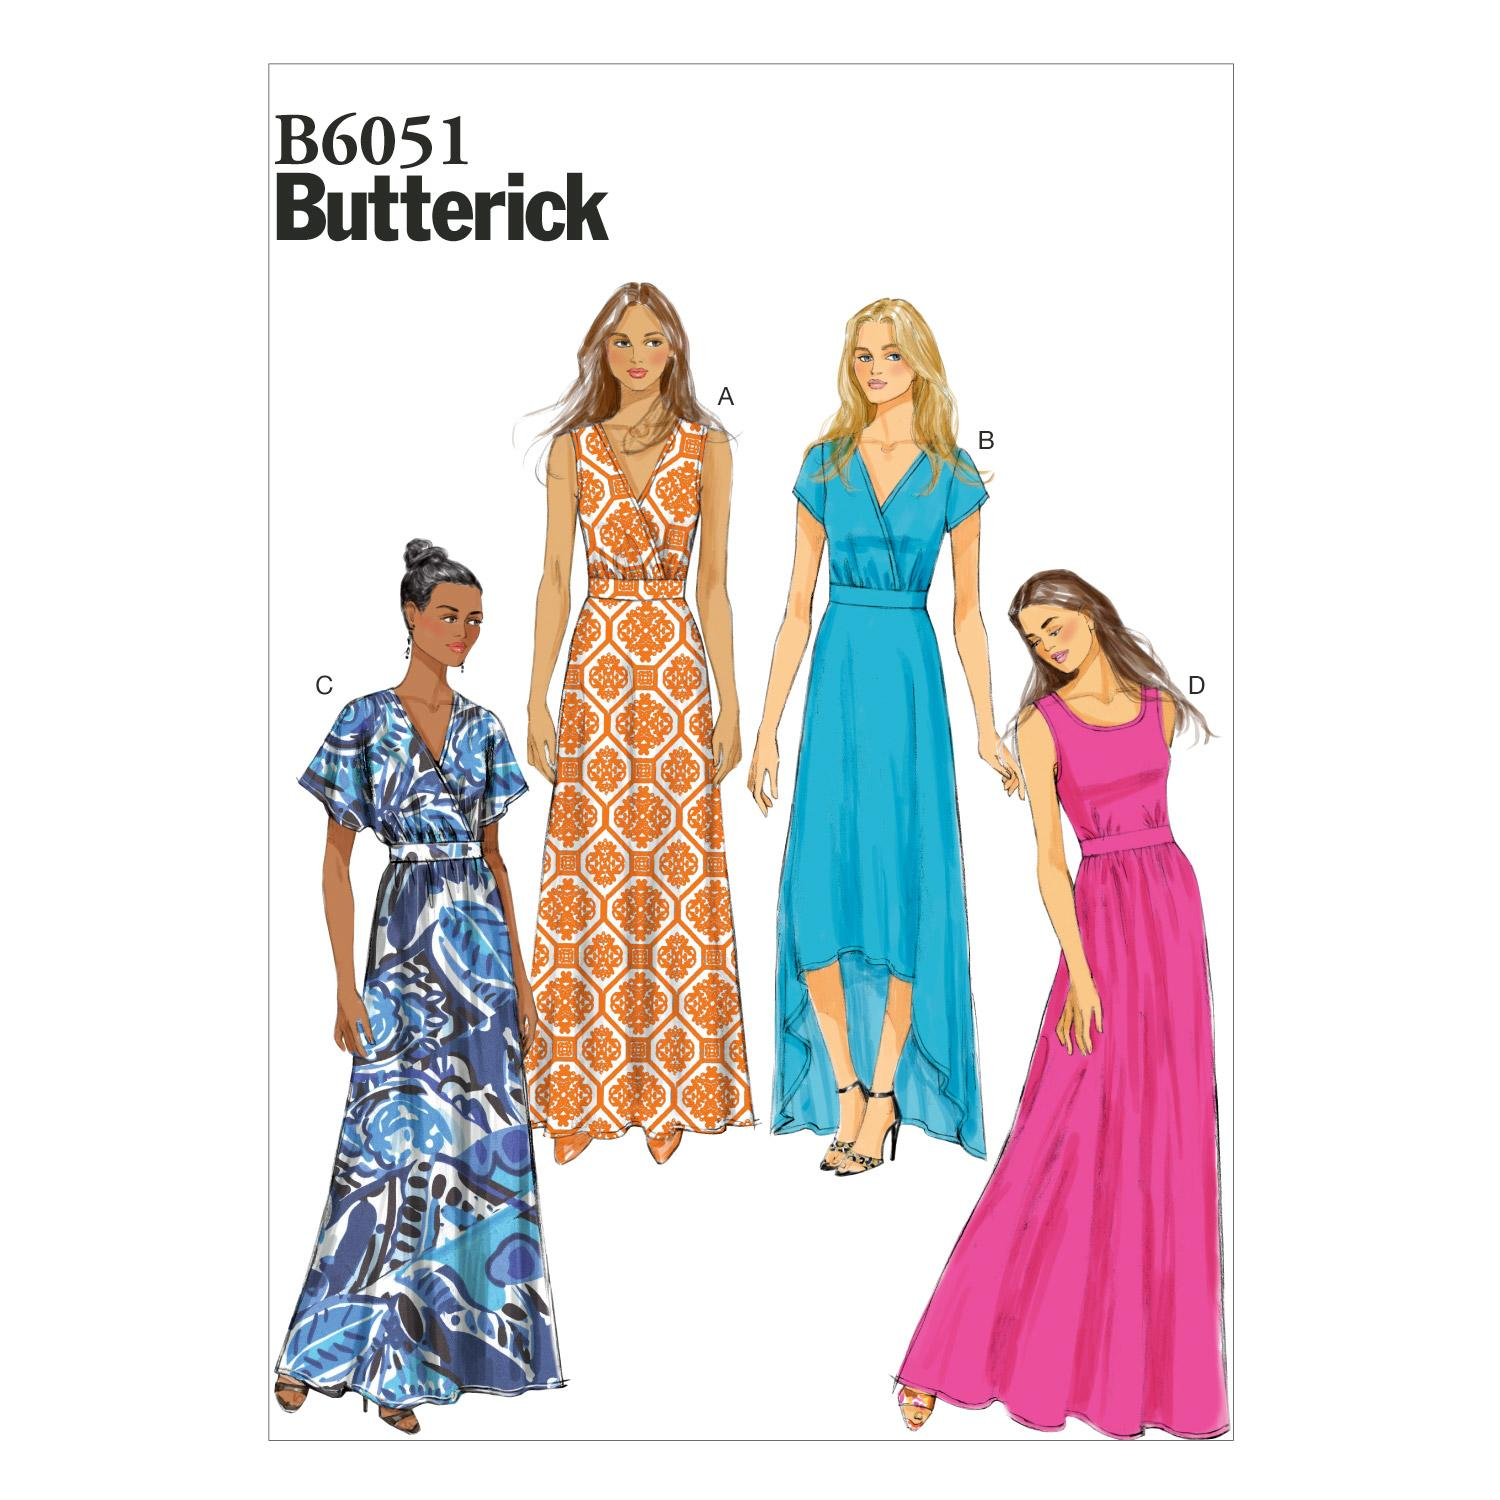 Butterick B6051 Misses' Dress